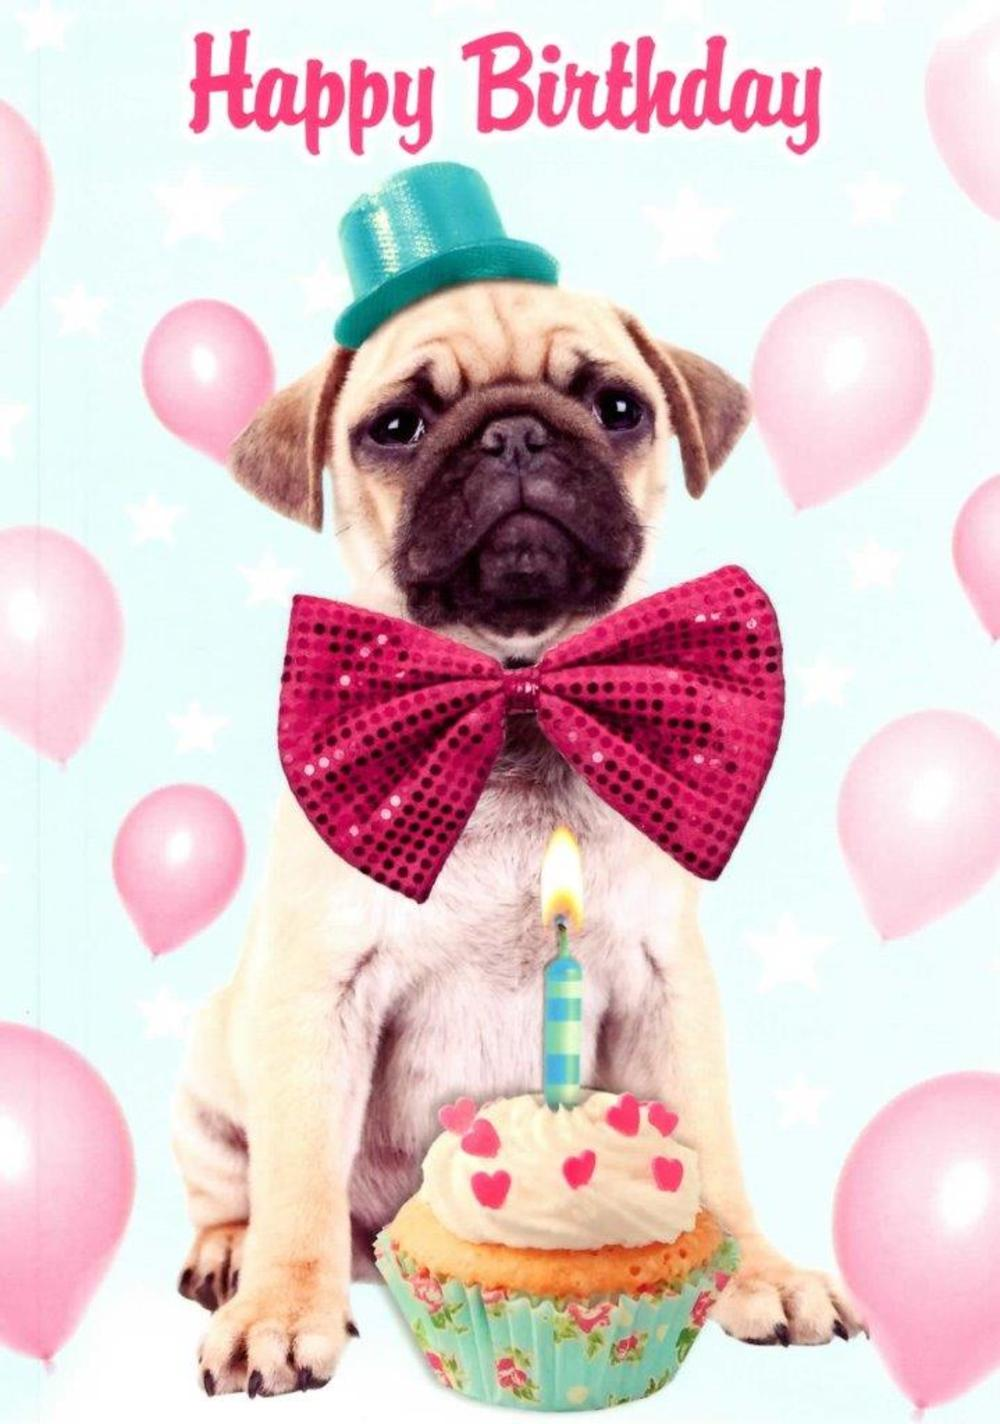 Pug dog happy birthday greeting card cards love kates pug dog happy birthday greeting card kristyandbryce Choice Image